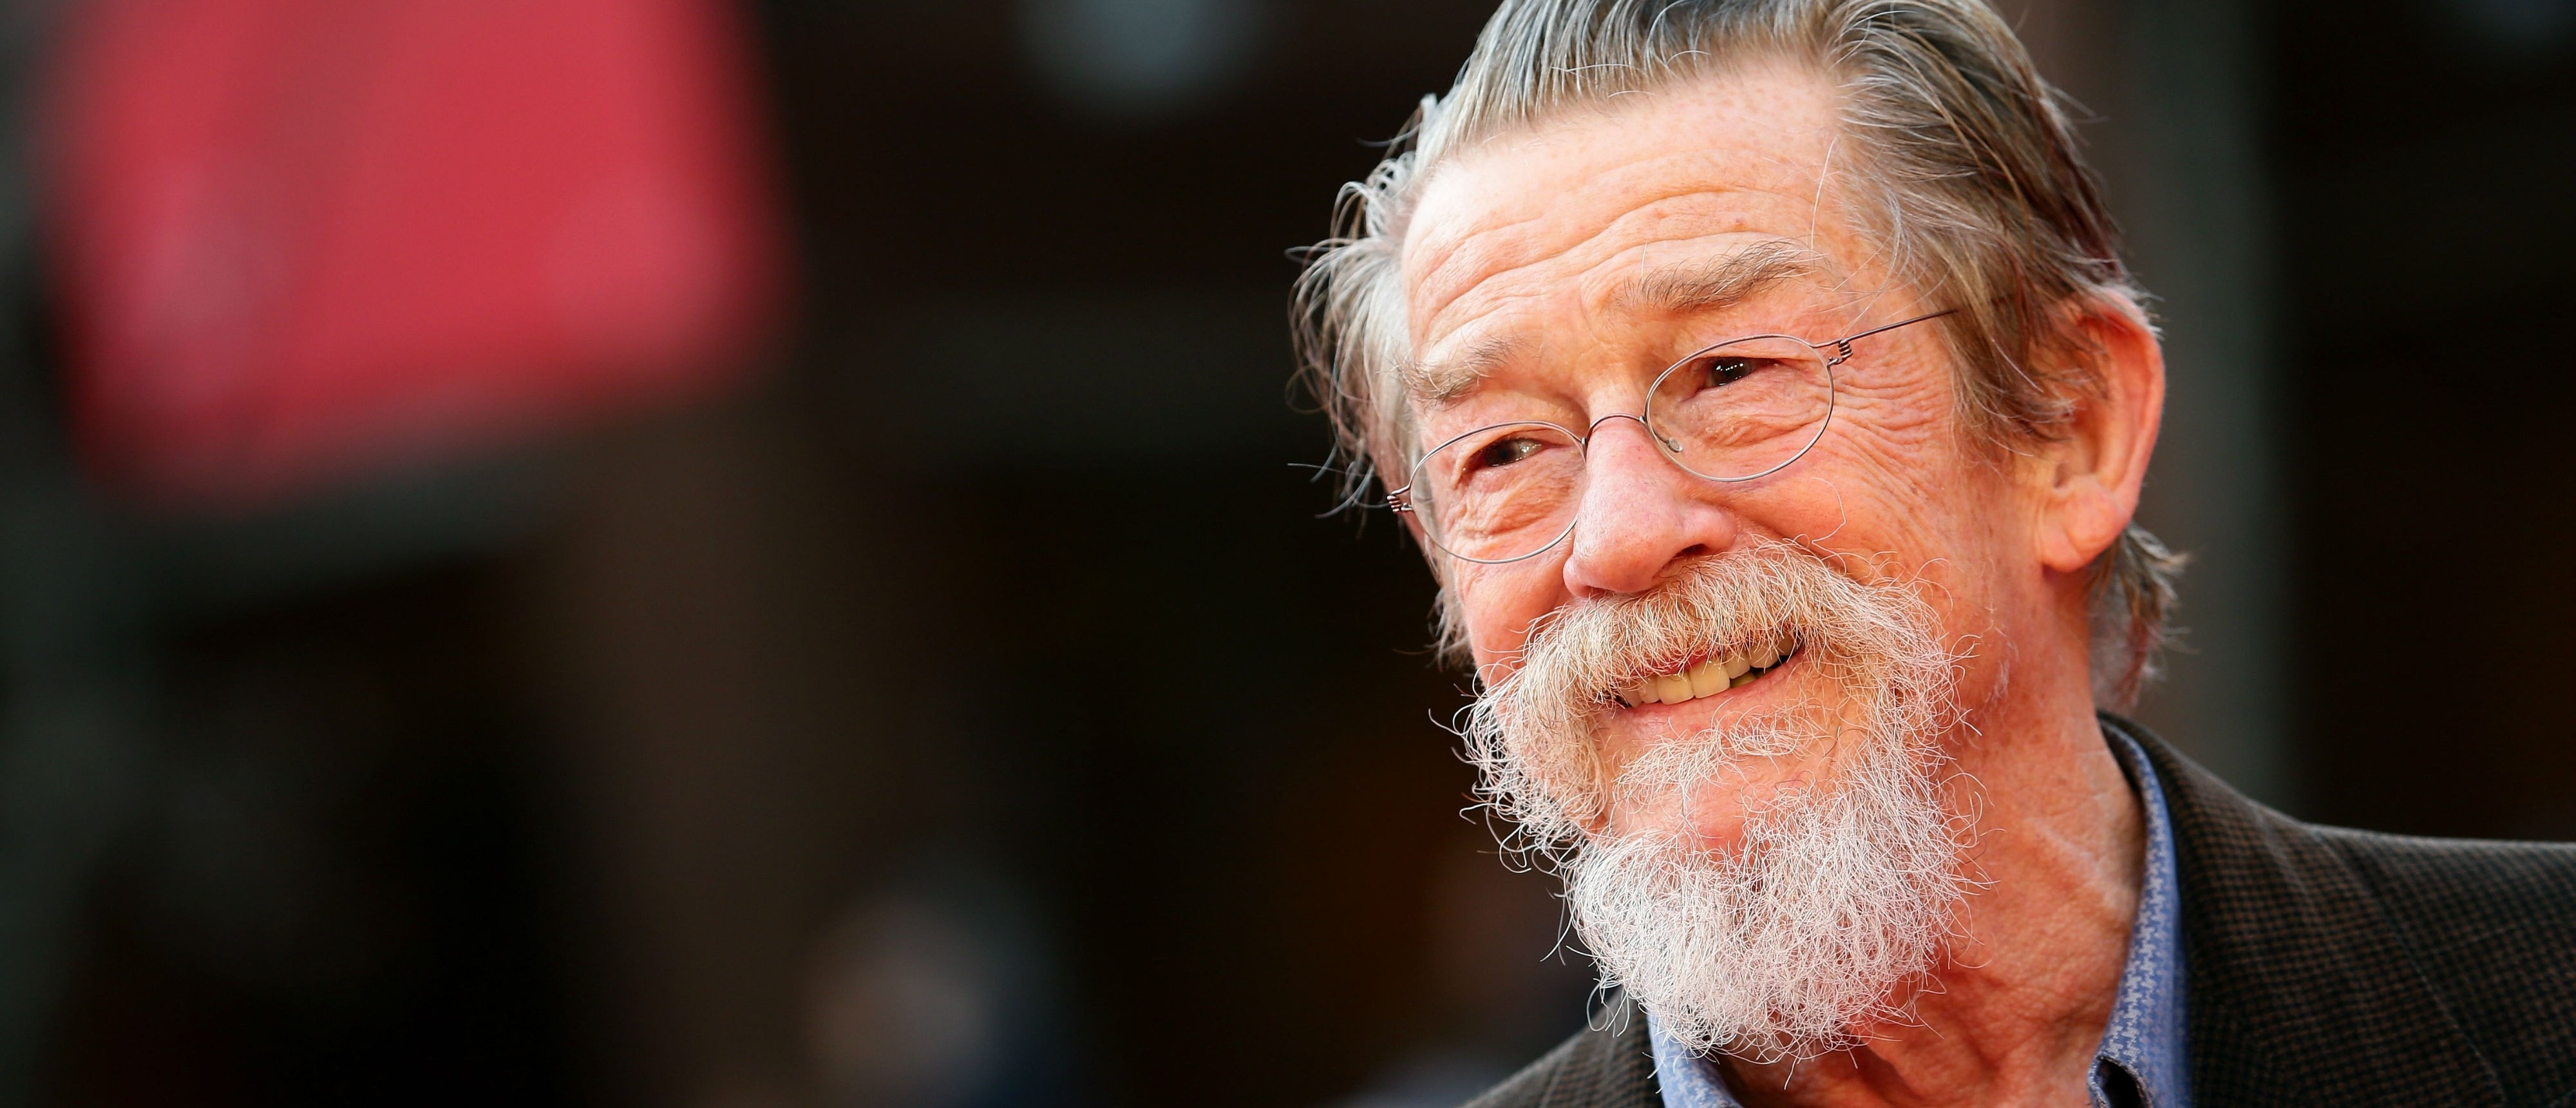 John Hurt Widescreen